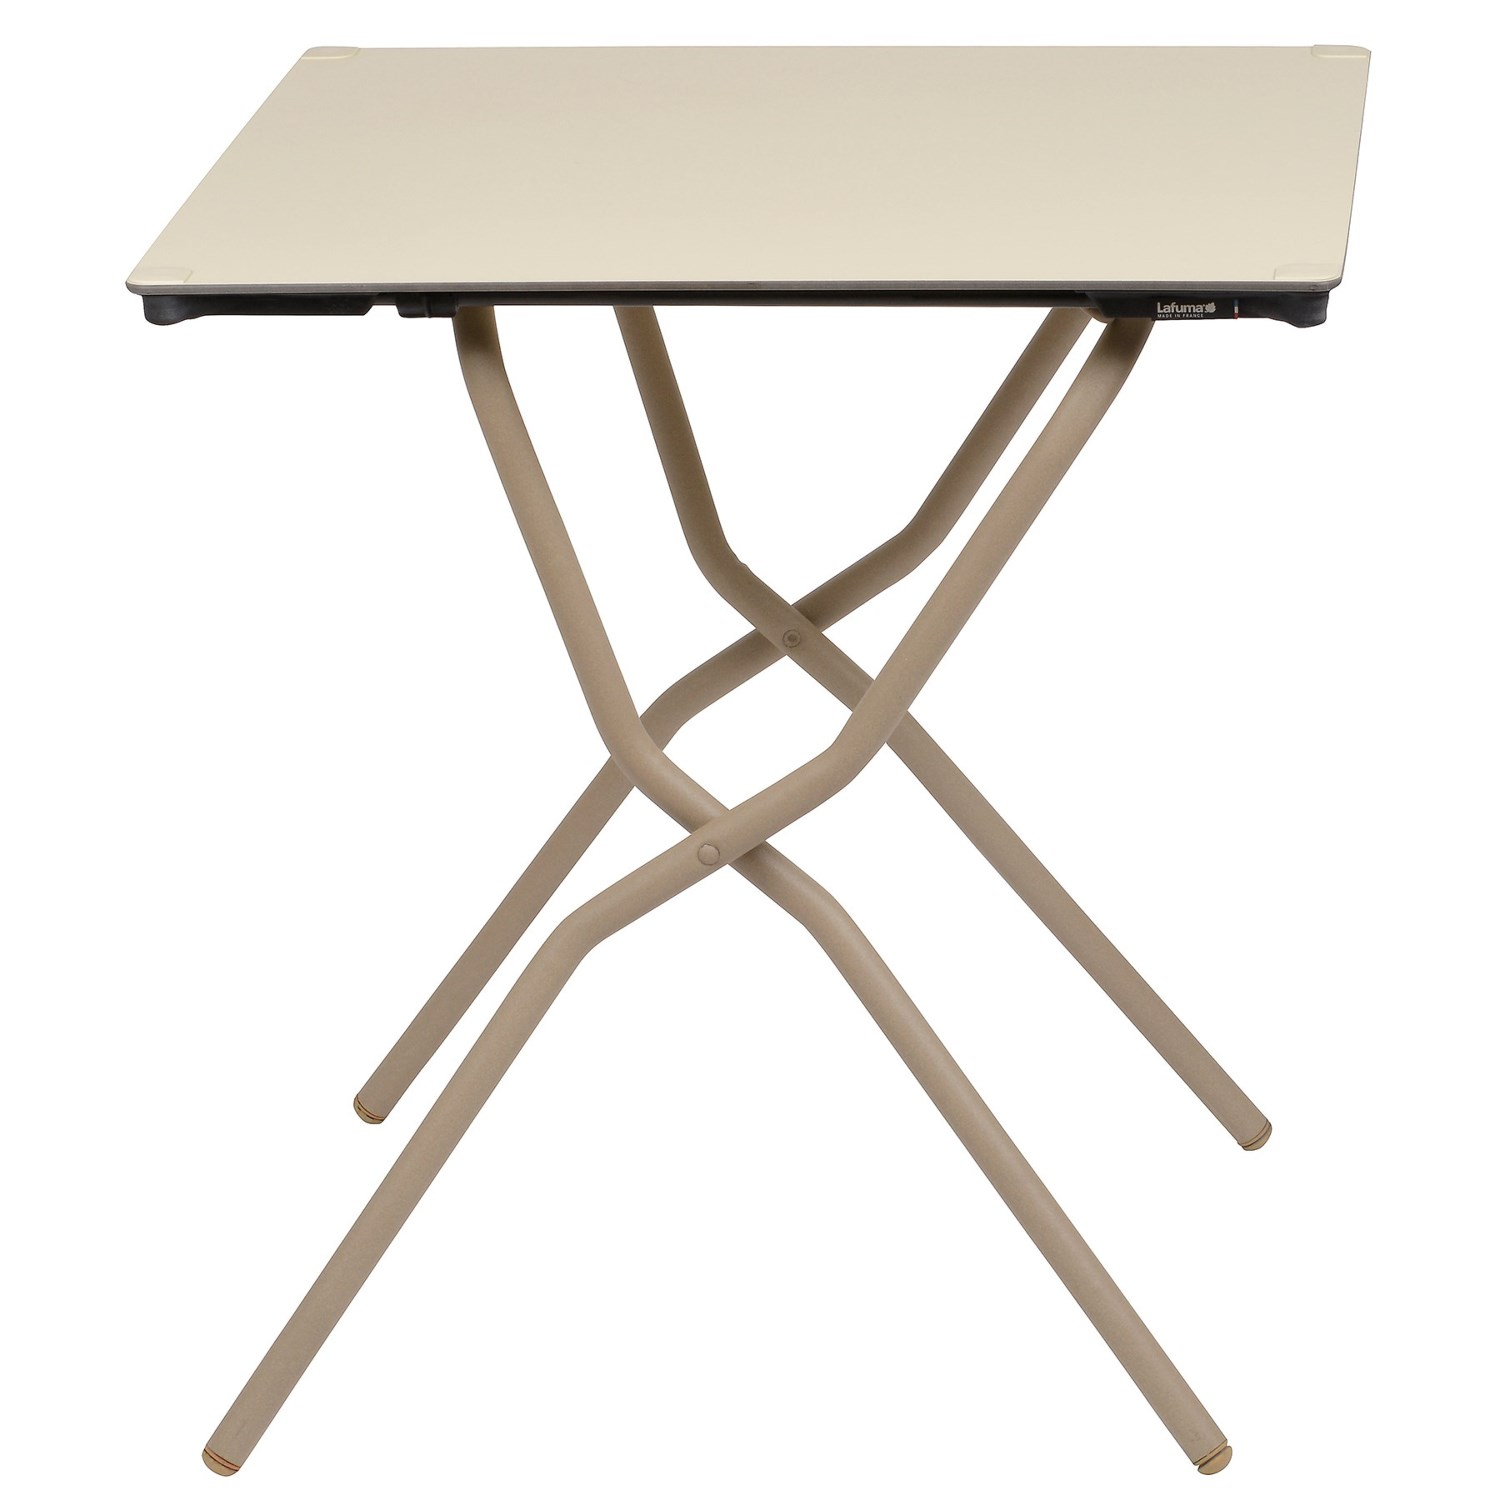 Lafuma anytime square folding table save 43 - Lafuma camping table ...